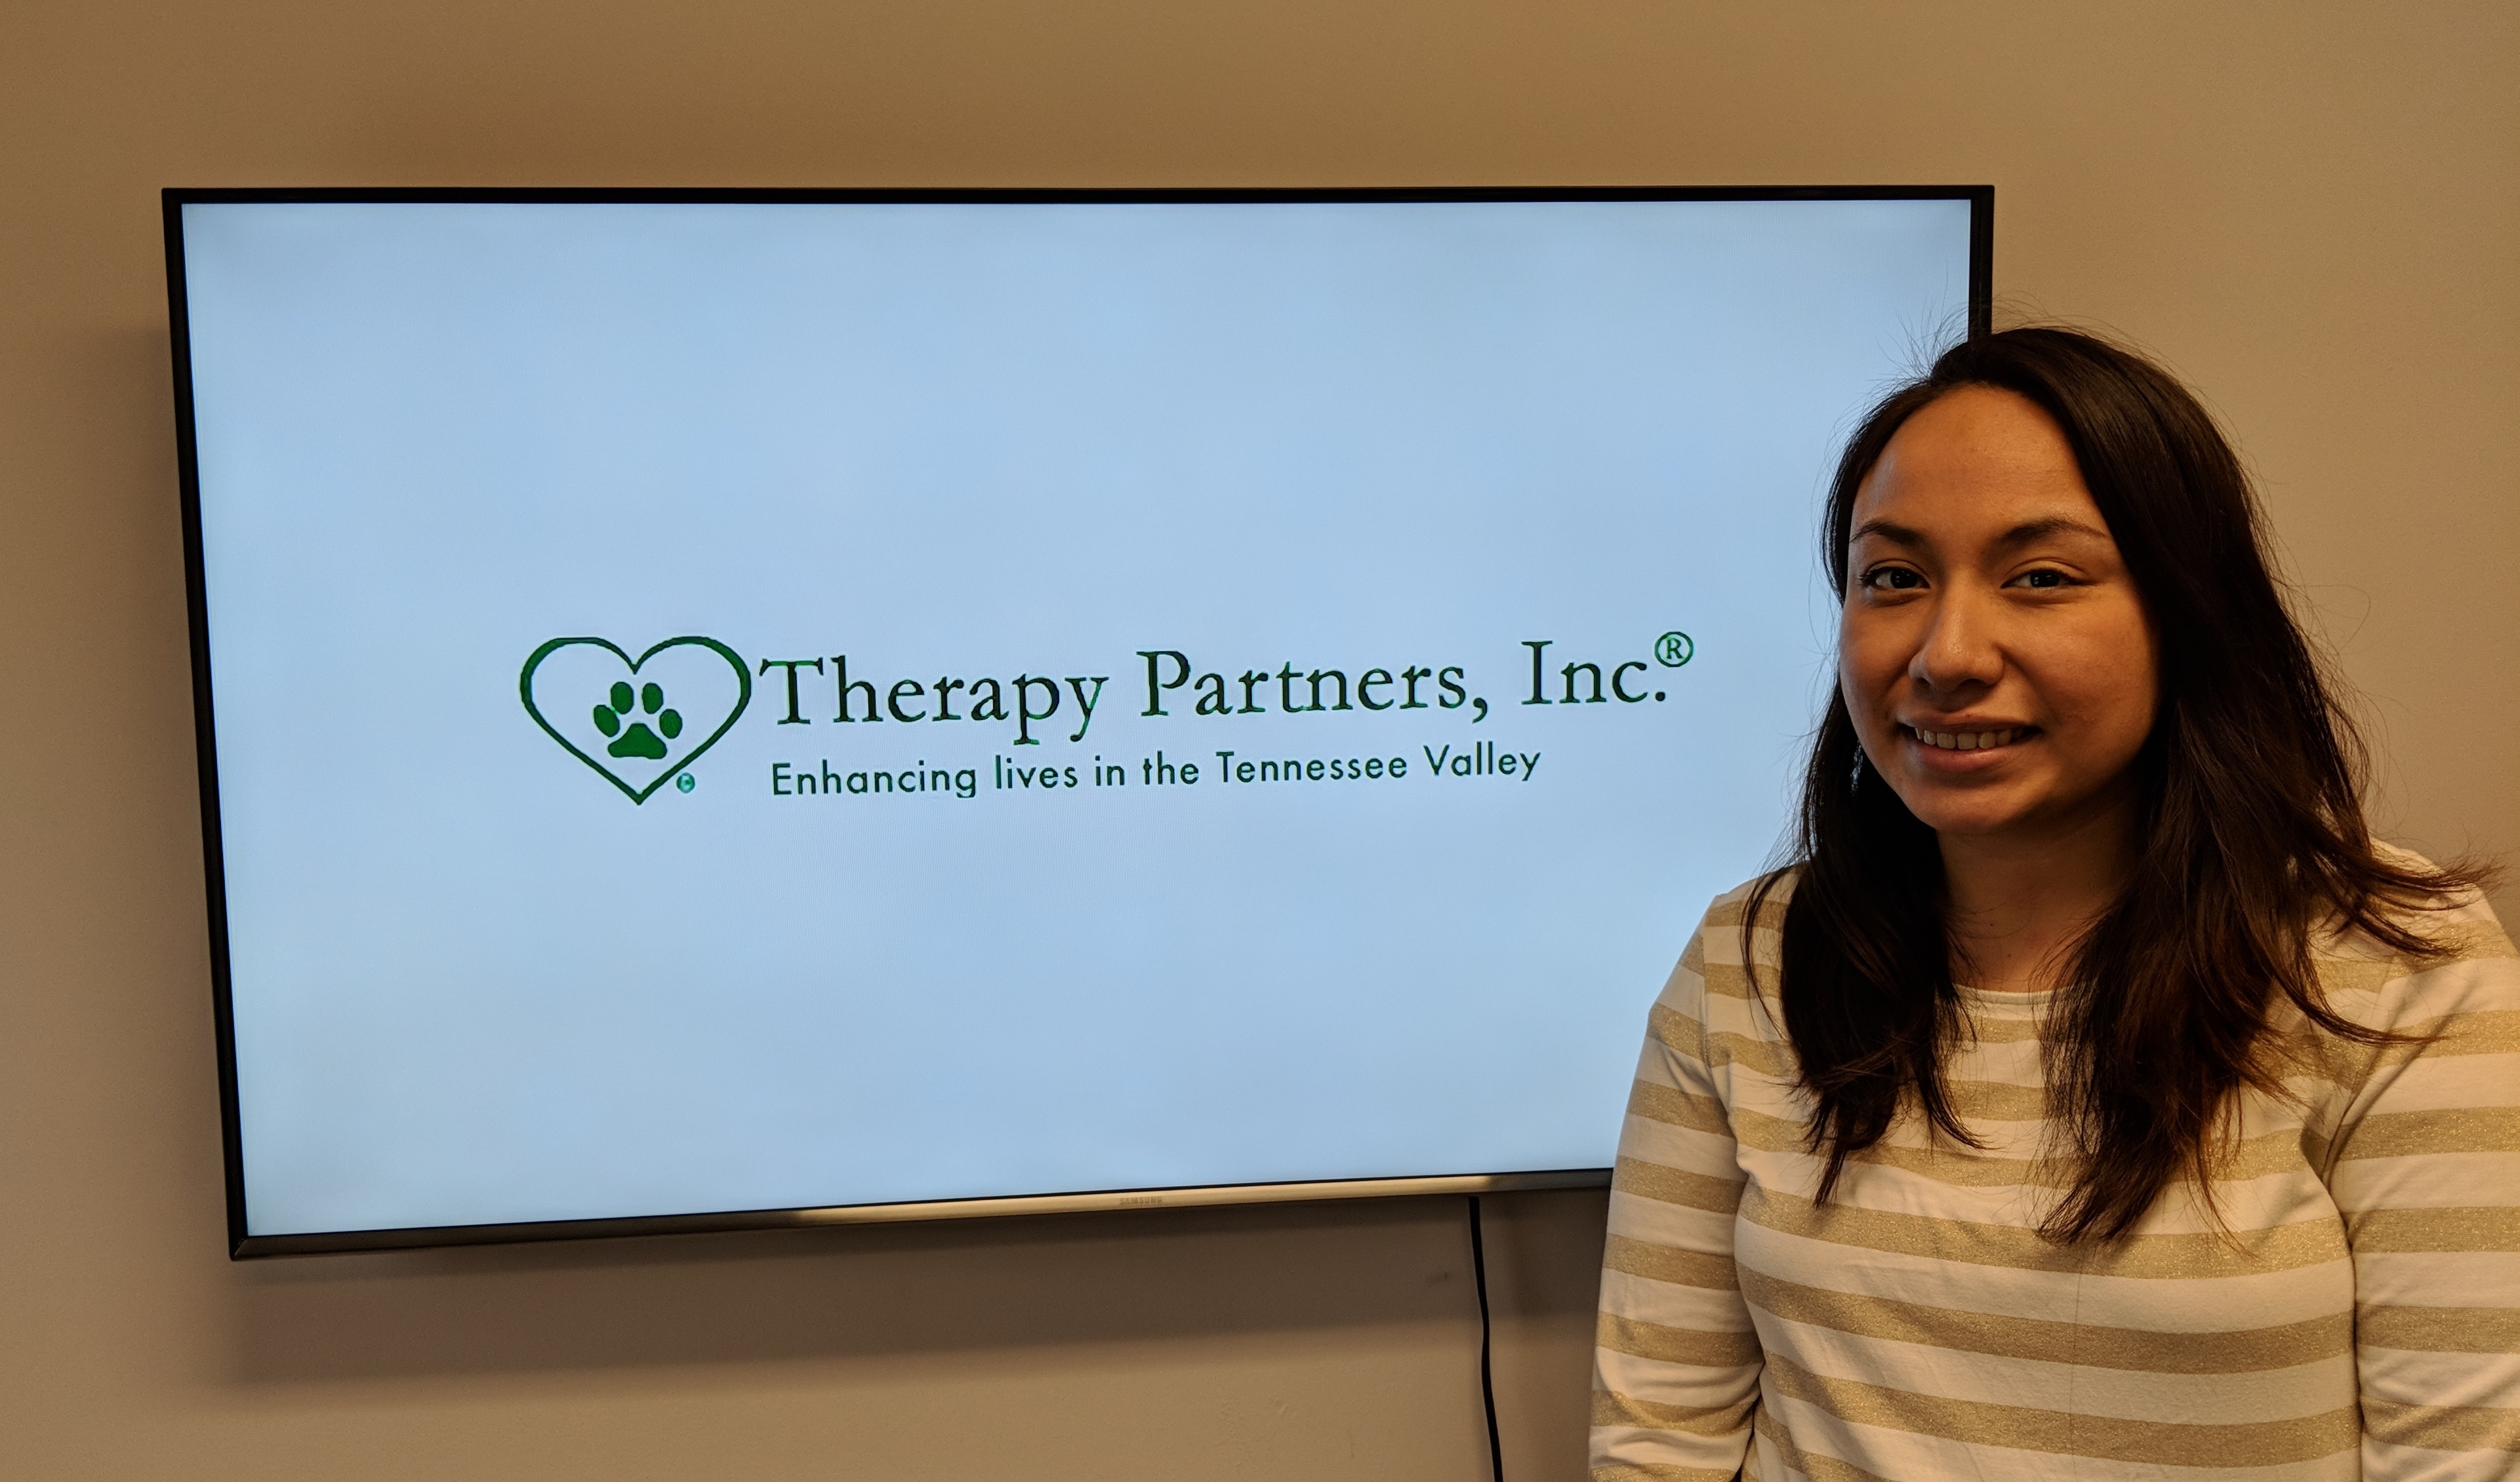 Featured image on Boxing for a Cause - Therapy Partners, Inc. - January 2018